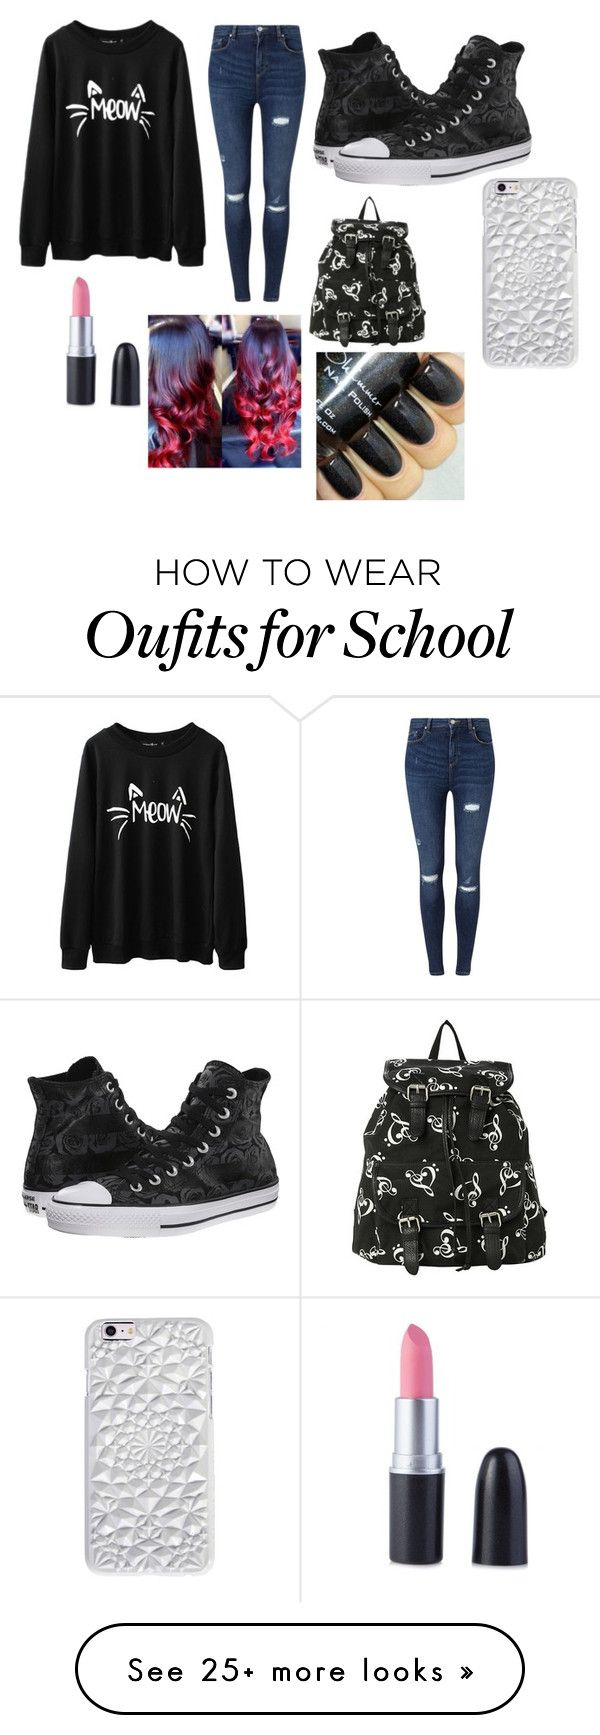 School Outfit//Thrusday by queenhalie on Polyvore featuring Miss Selfridge, Converse, Felony Case, womens clothing, women, female, woman, misses, juniors and SchoolOufits - NIKE Women's Shoes - http://amzn.to/2hIkcr5